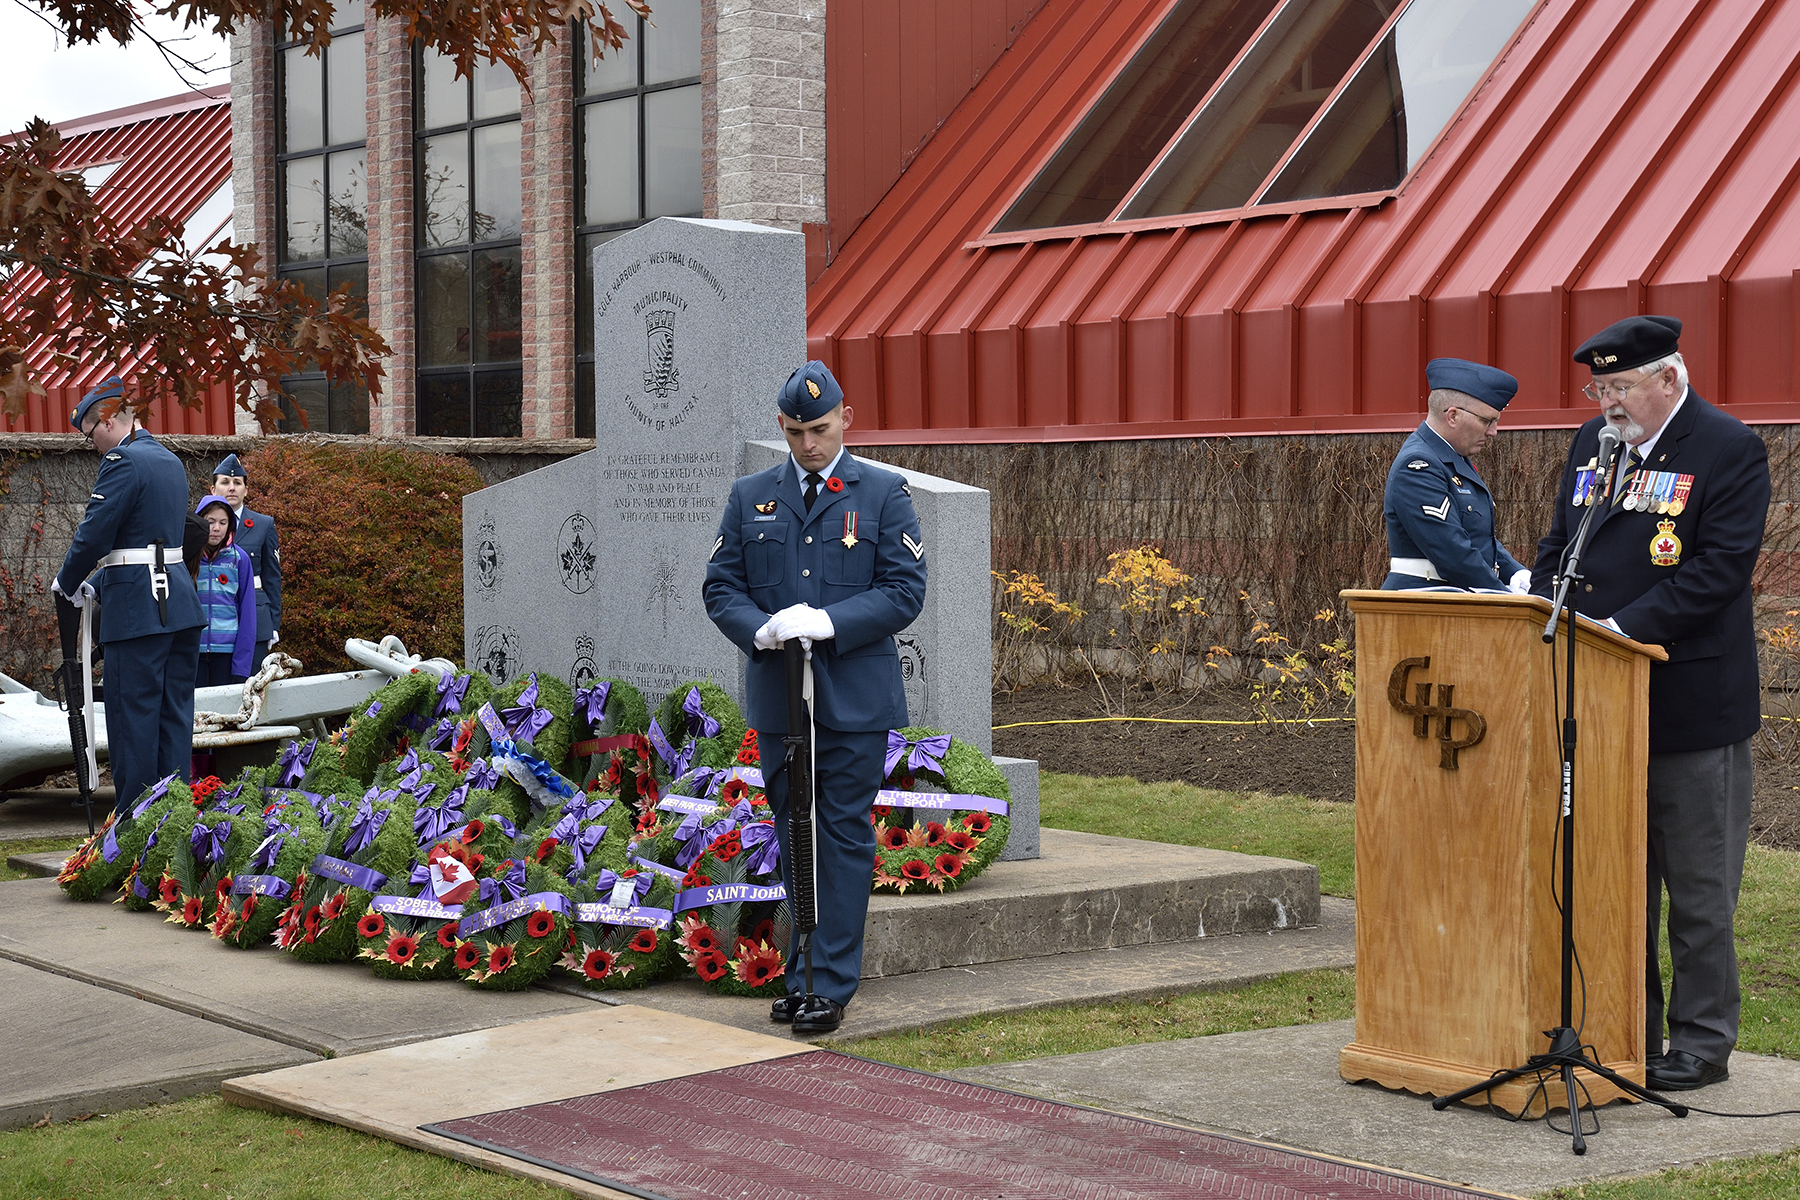 While Royal Canadian Air Force sentries stand vigil at the cenotaph, Comrade Terry Pond, 1st vice president and poppy chair of Royal Canadian Legion Centennial Branch #160, calls the names of wreath bearers during the November 11, 2015, Remembrance Day ceremony held at Cole Harbour Place in Dartmouth, Nova Scotia. PHOTO: Corporal Anthony Laviolette